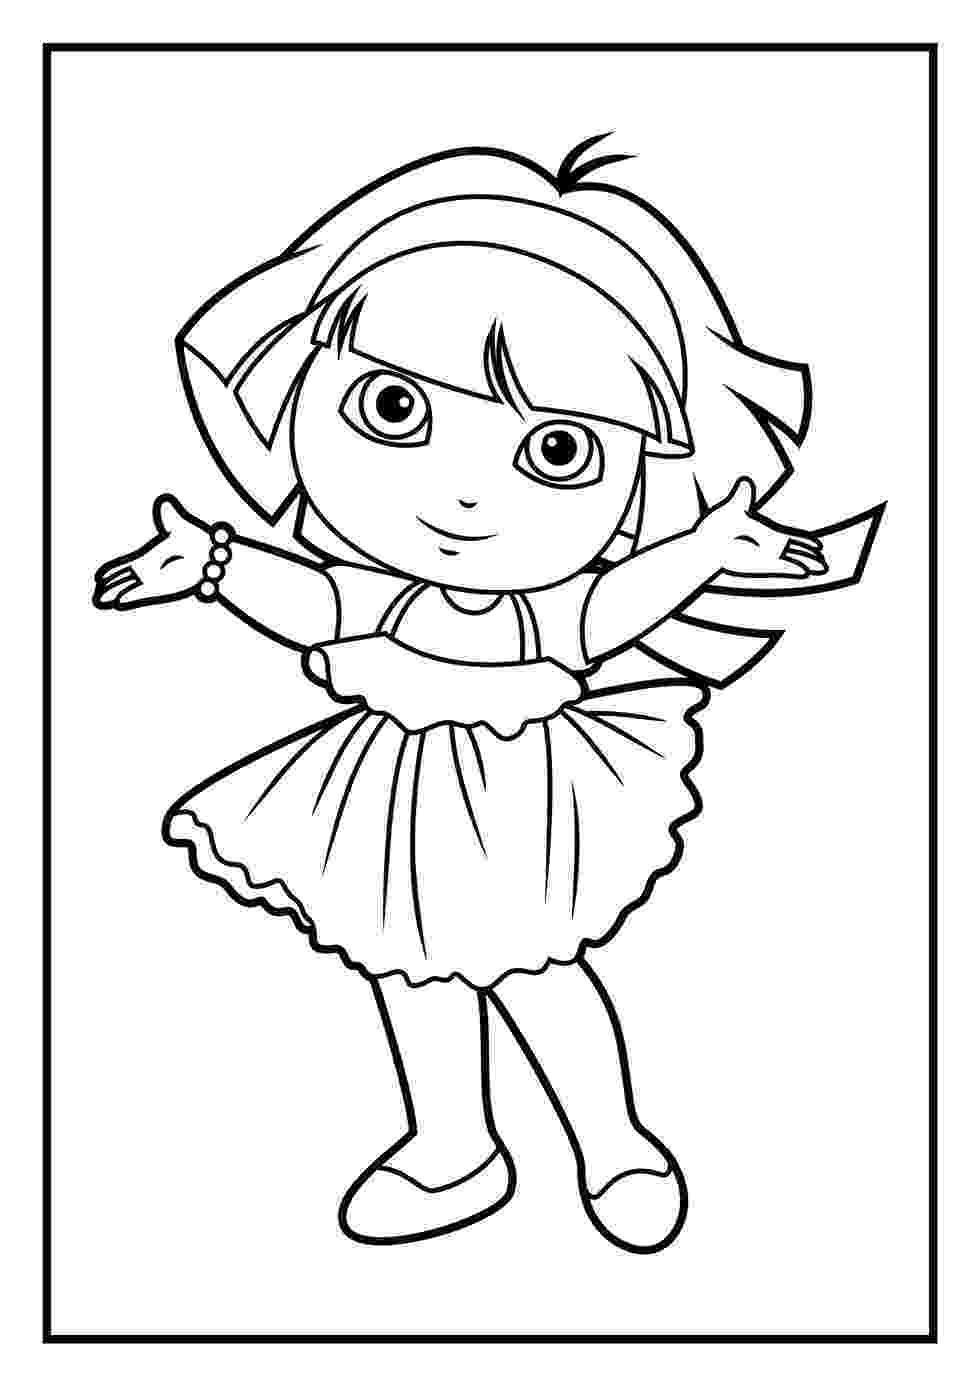 dora free dora coloring pages diego coloring pages free dora